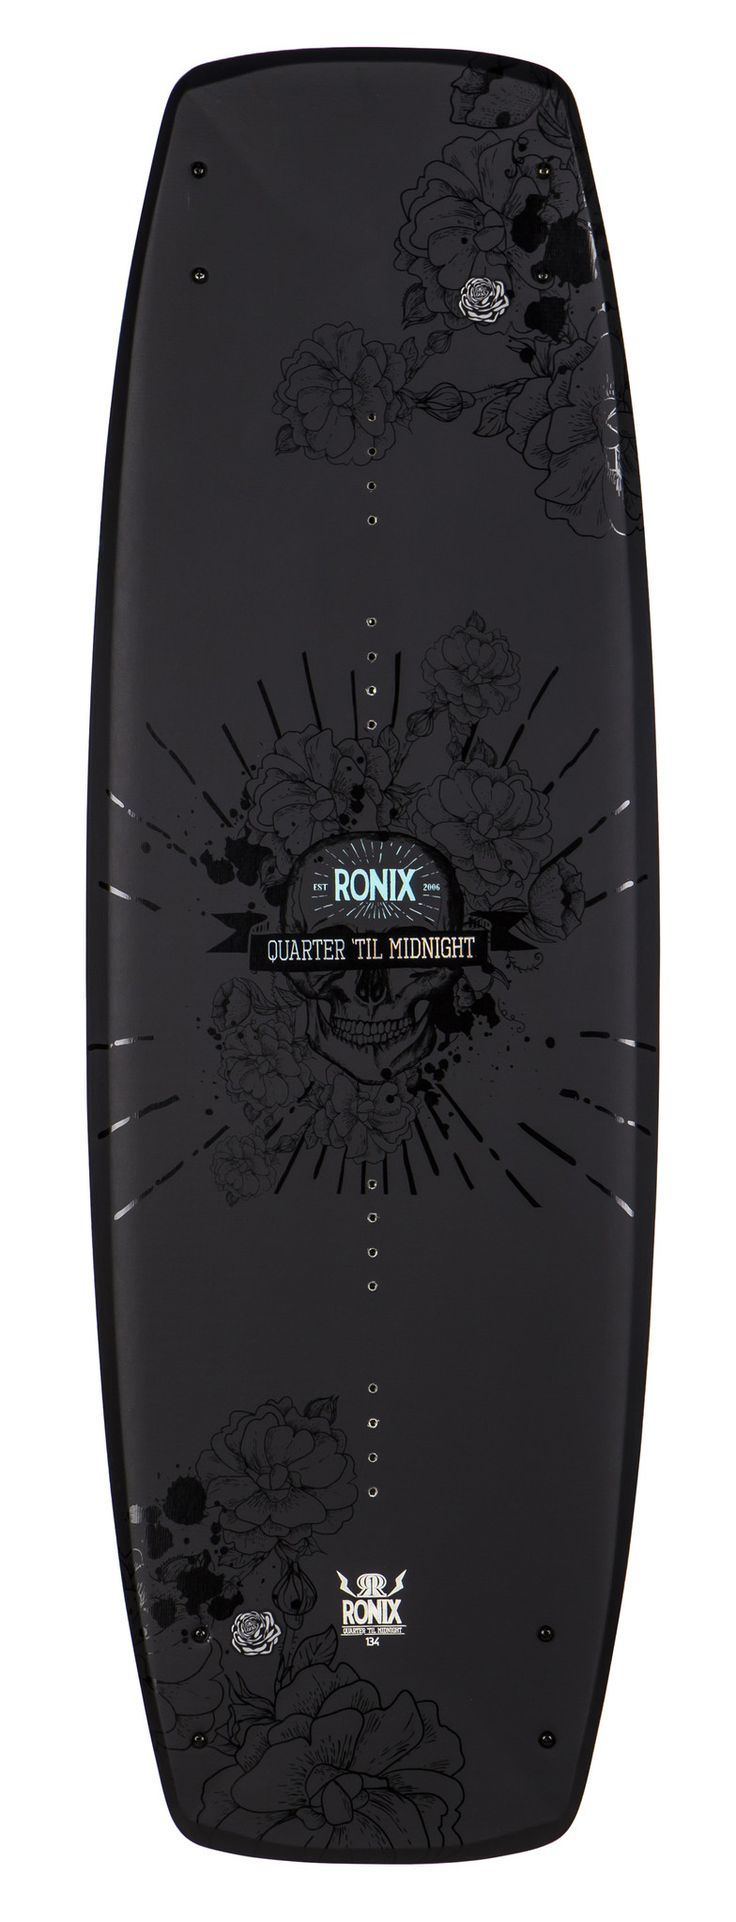 Ronix QUARTER 'TIL MIDNIGHT Women's Wakeboard This brand spanking new, hot off the press, versatile Quarter 'Til Midnight can be ridden with no stereotypes. Finally a women's board that adapts to the